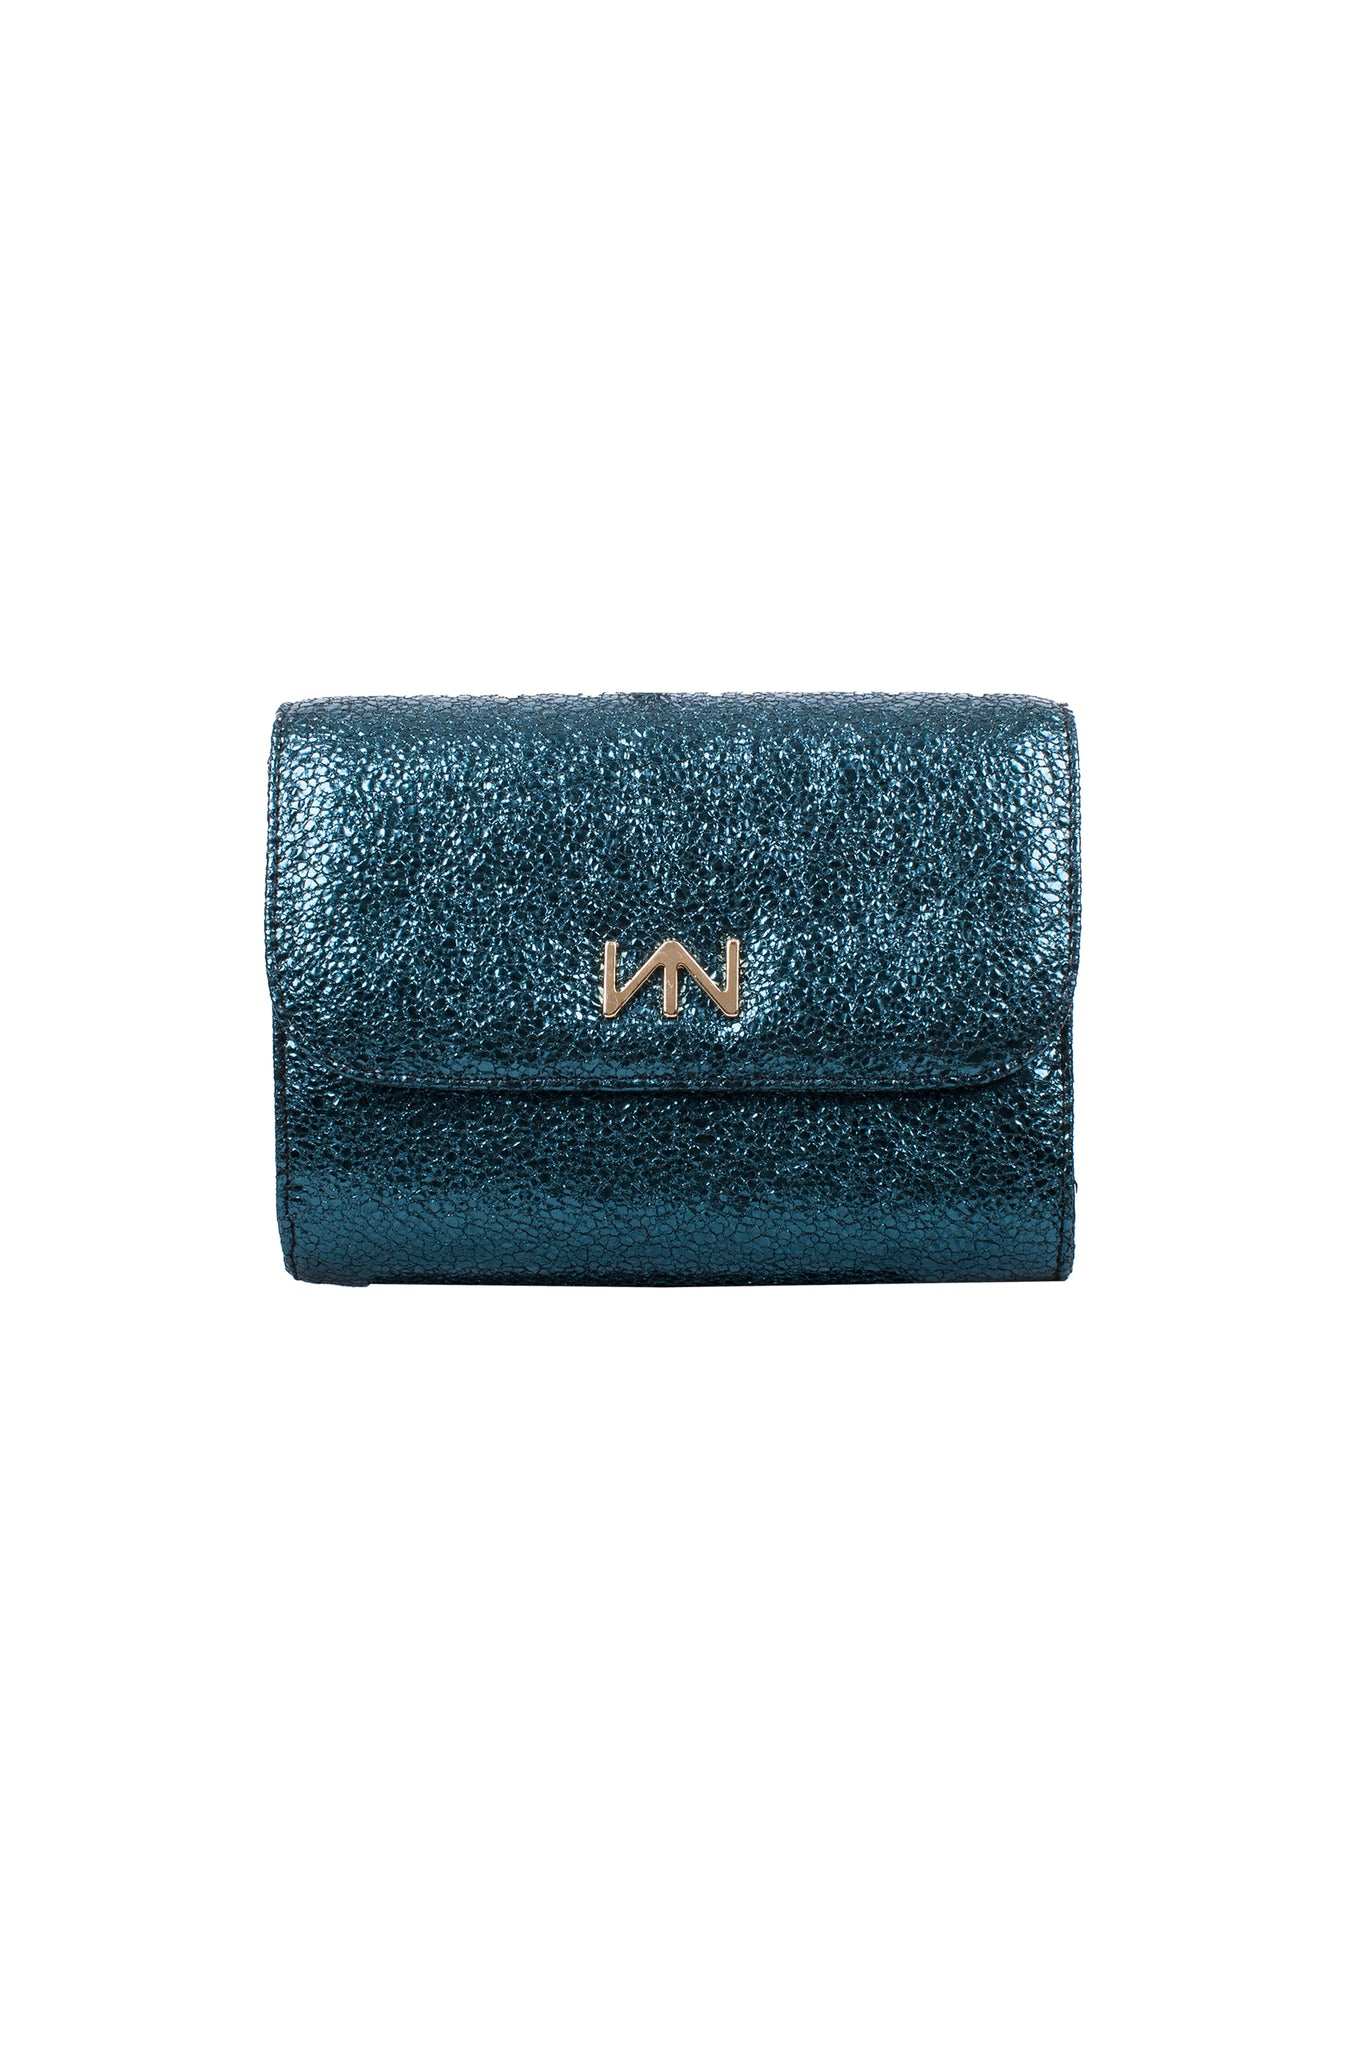 "CLUTCH ""NN METAL 14.18"" 